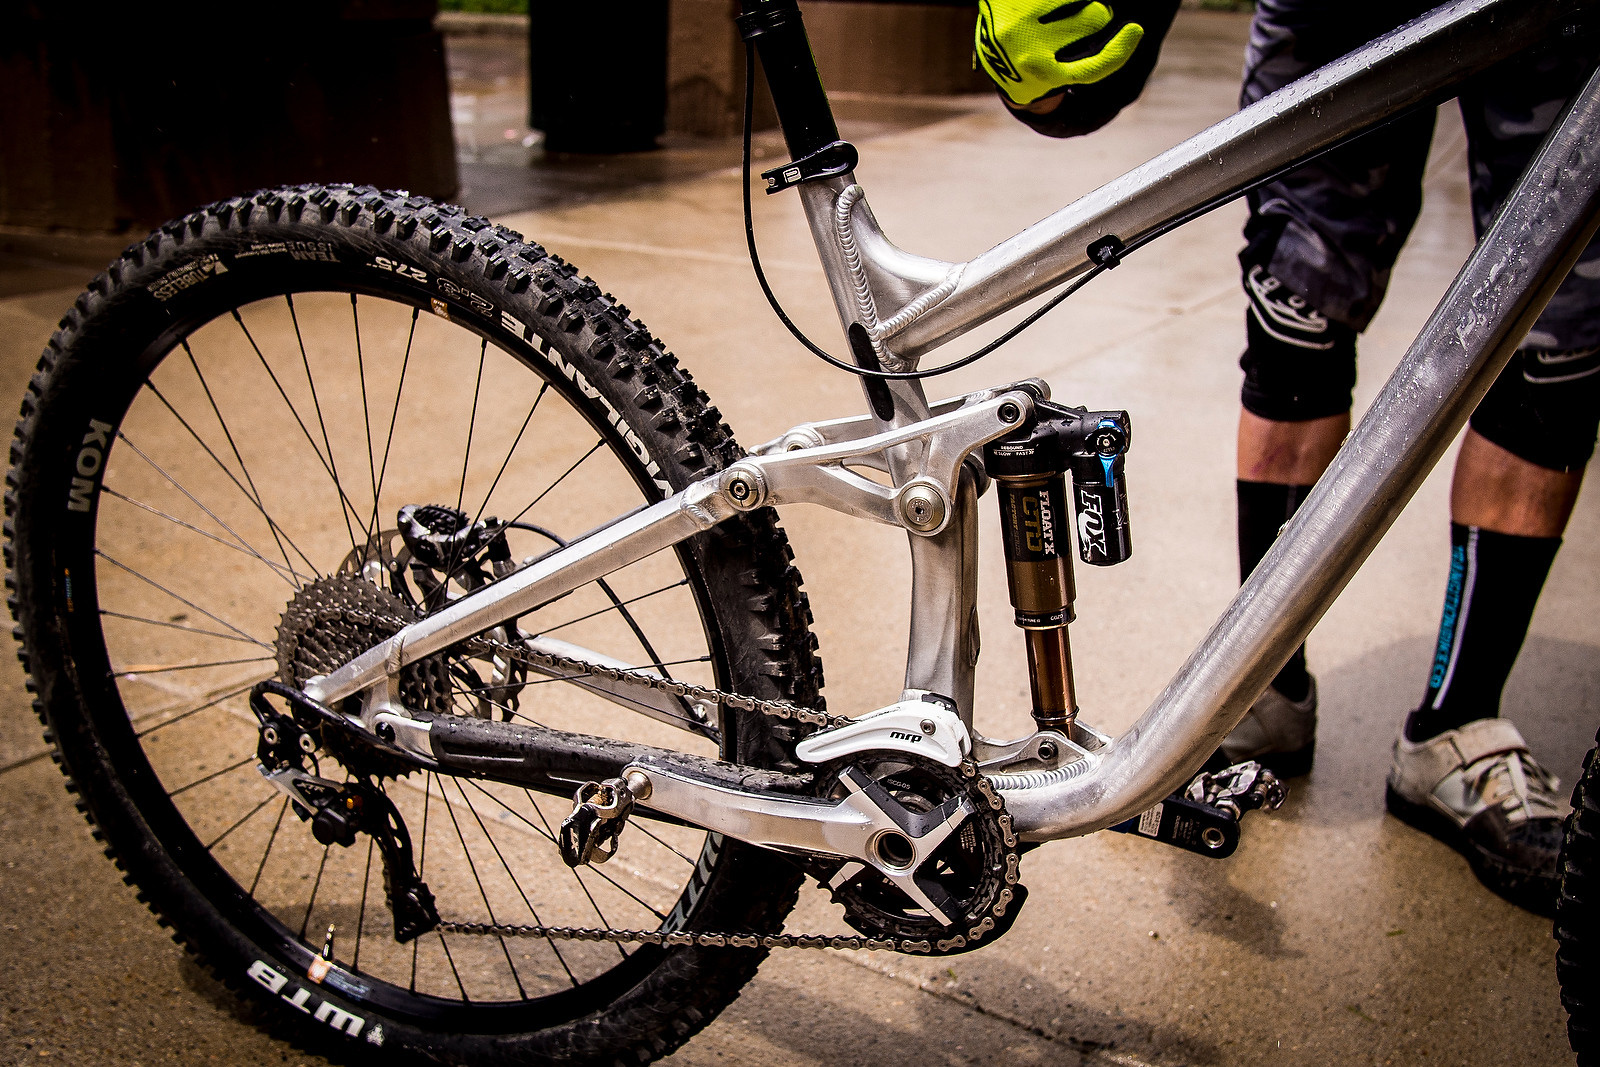 Lars Sternberg's Prototype Transition Enduro Race Bike - PIT BITS - 2014 Enduro World Series Colorado Freeride Festival - Mountain Biking Pictures - Vital MTB